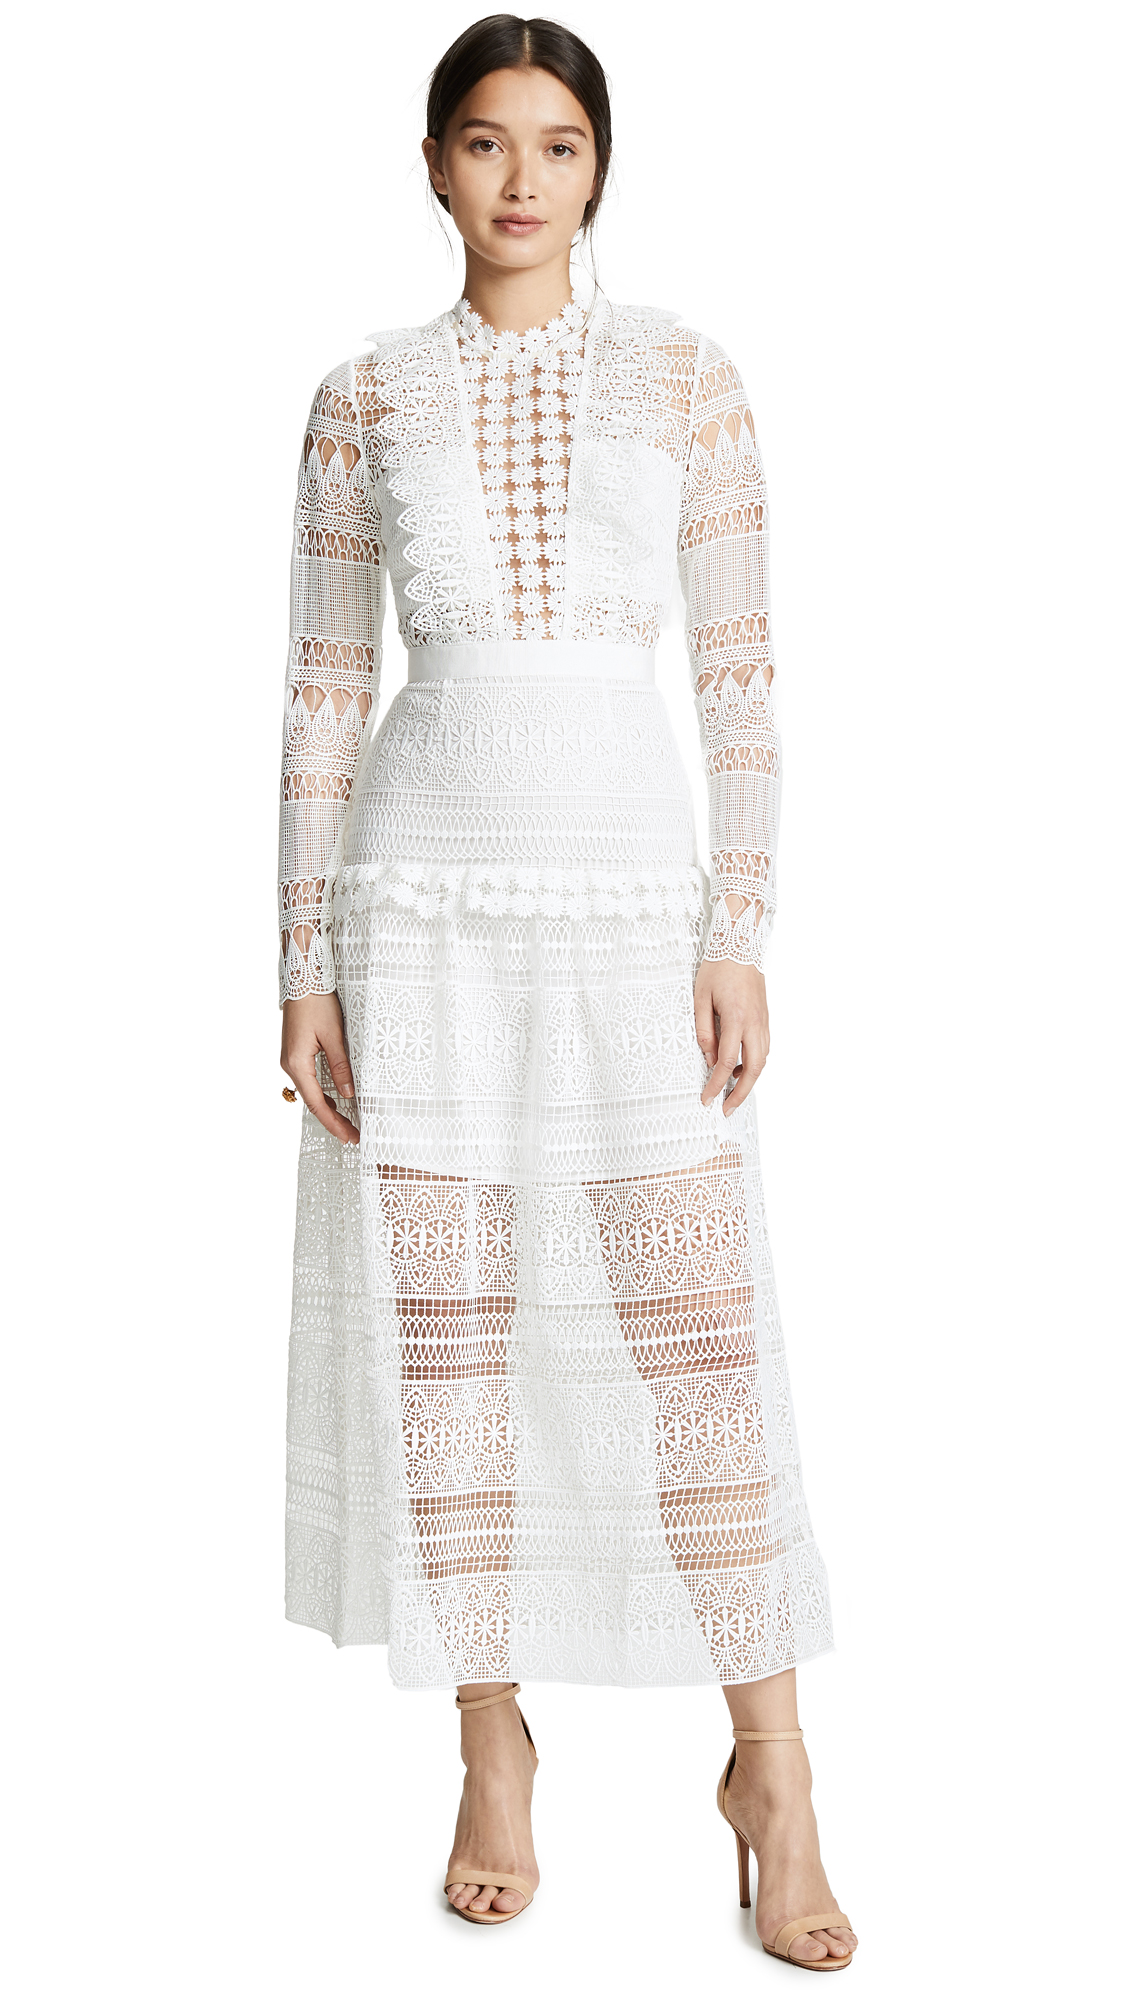 Self Portrait Spiral Lace Paneled Midi Dress - Ivory